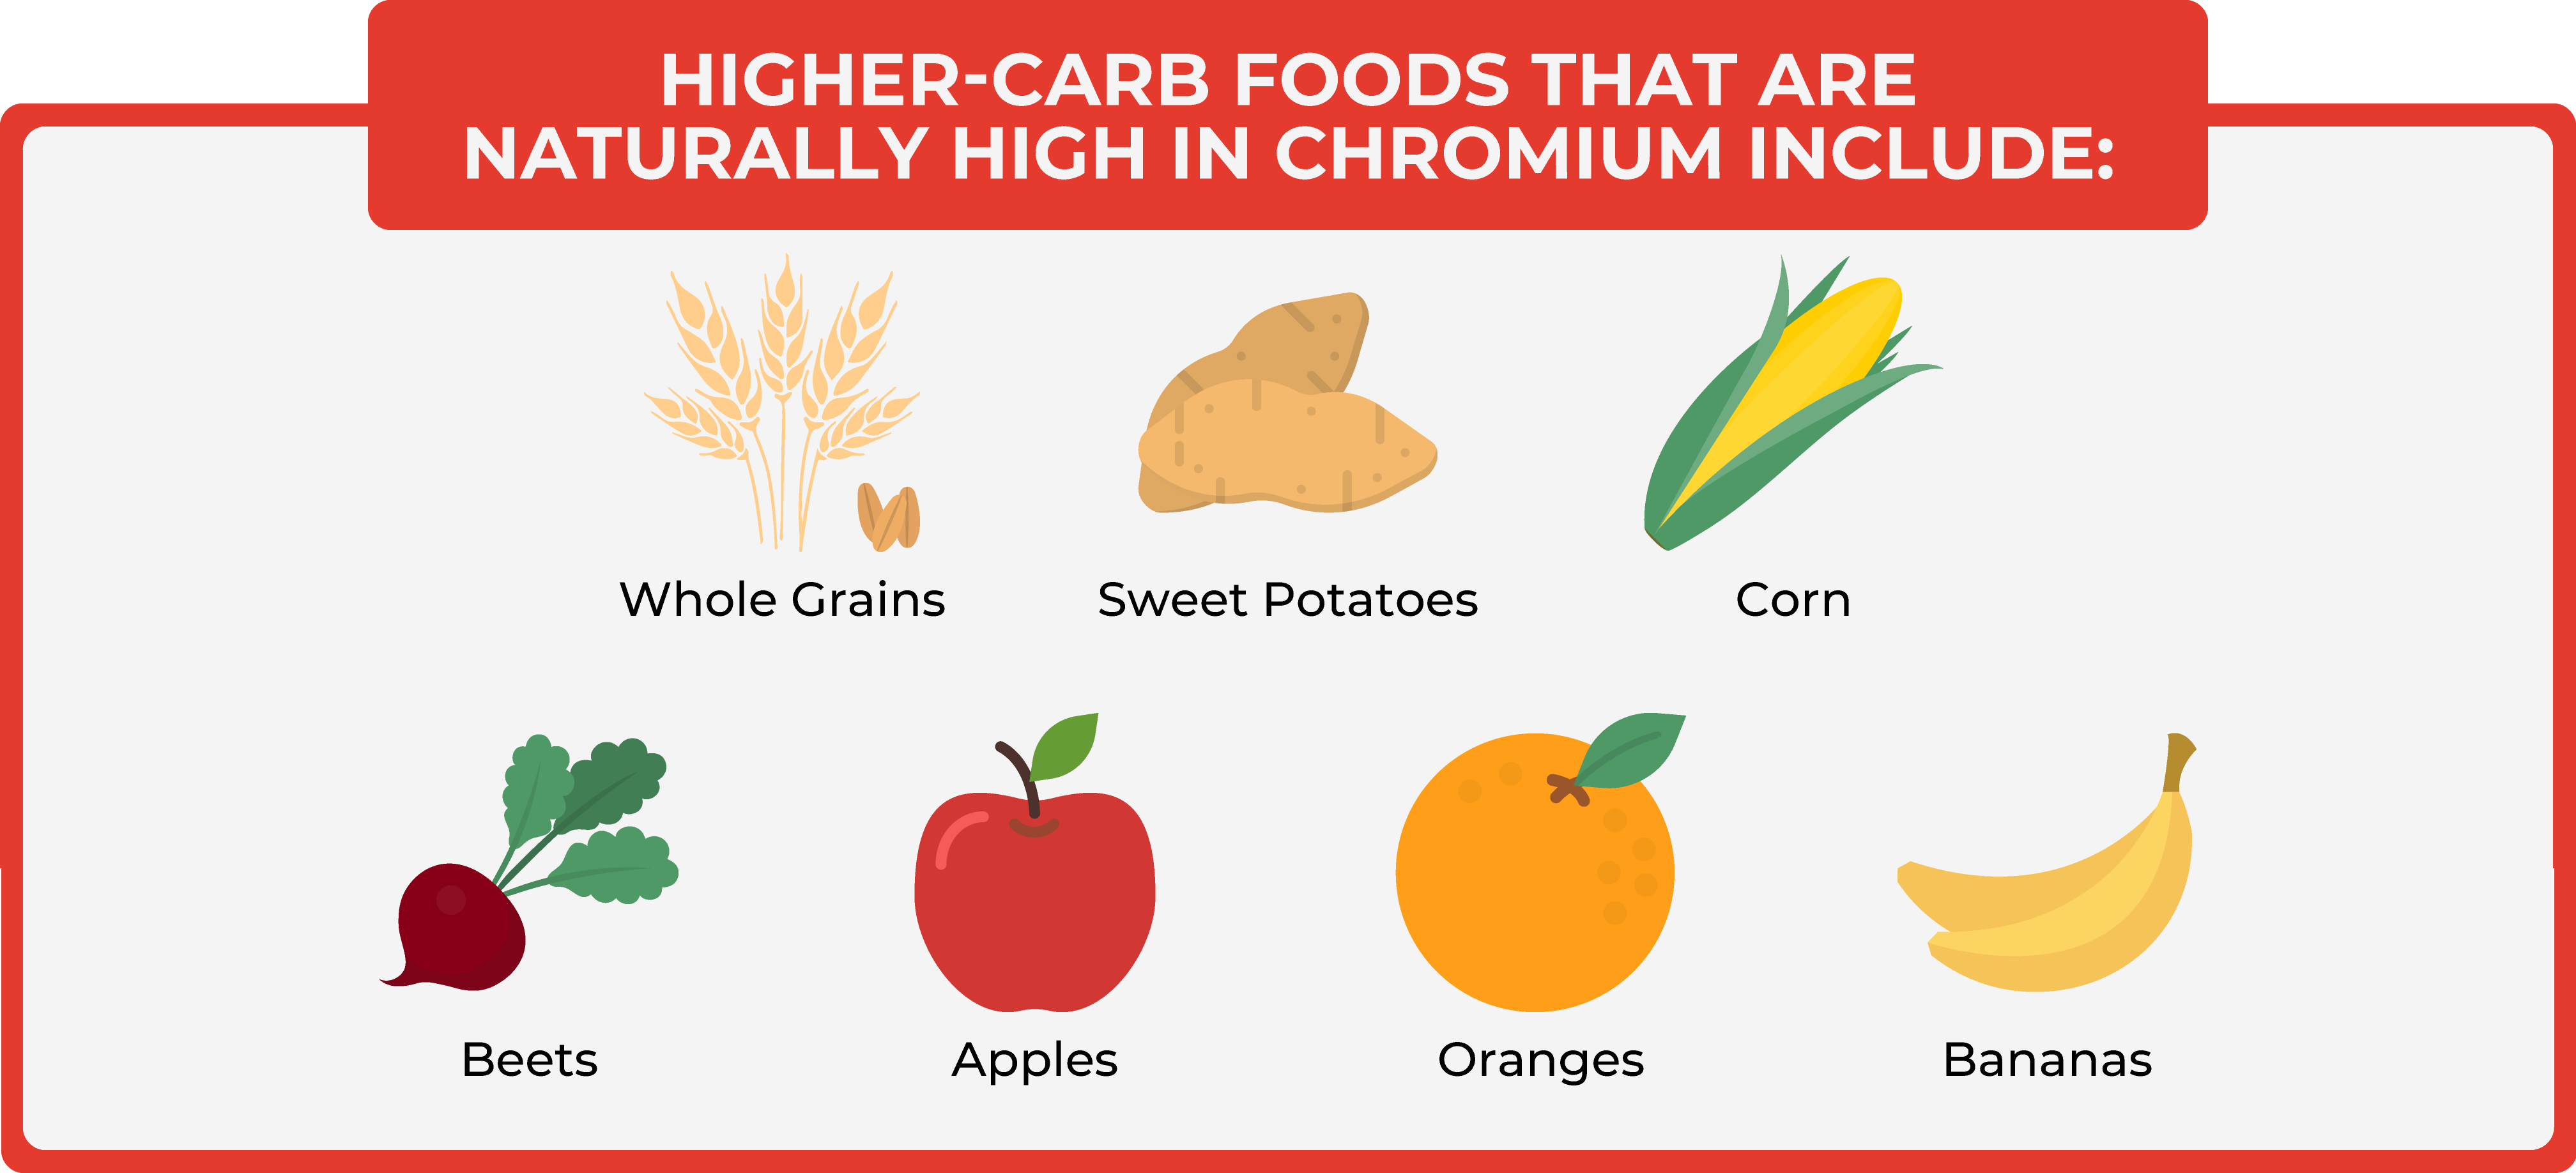 higher-carb-foods-that-are-naturally-high-in-chromium-include.png